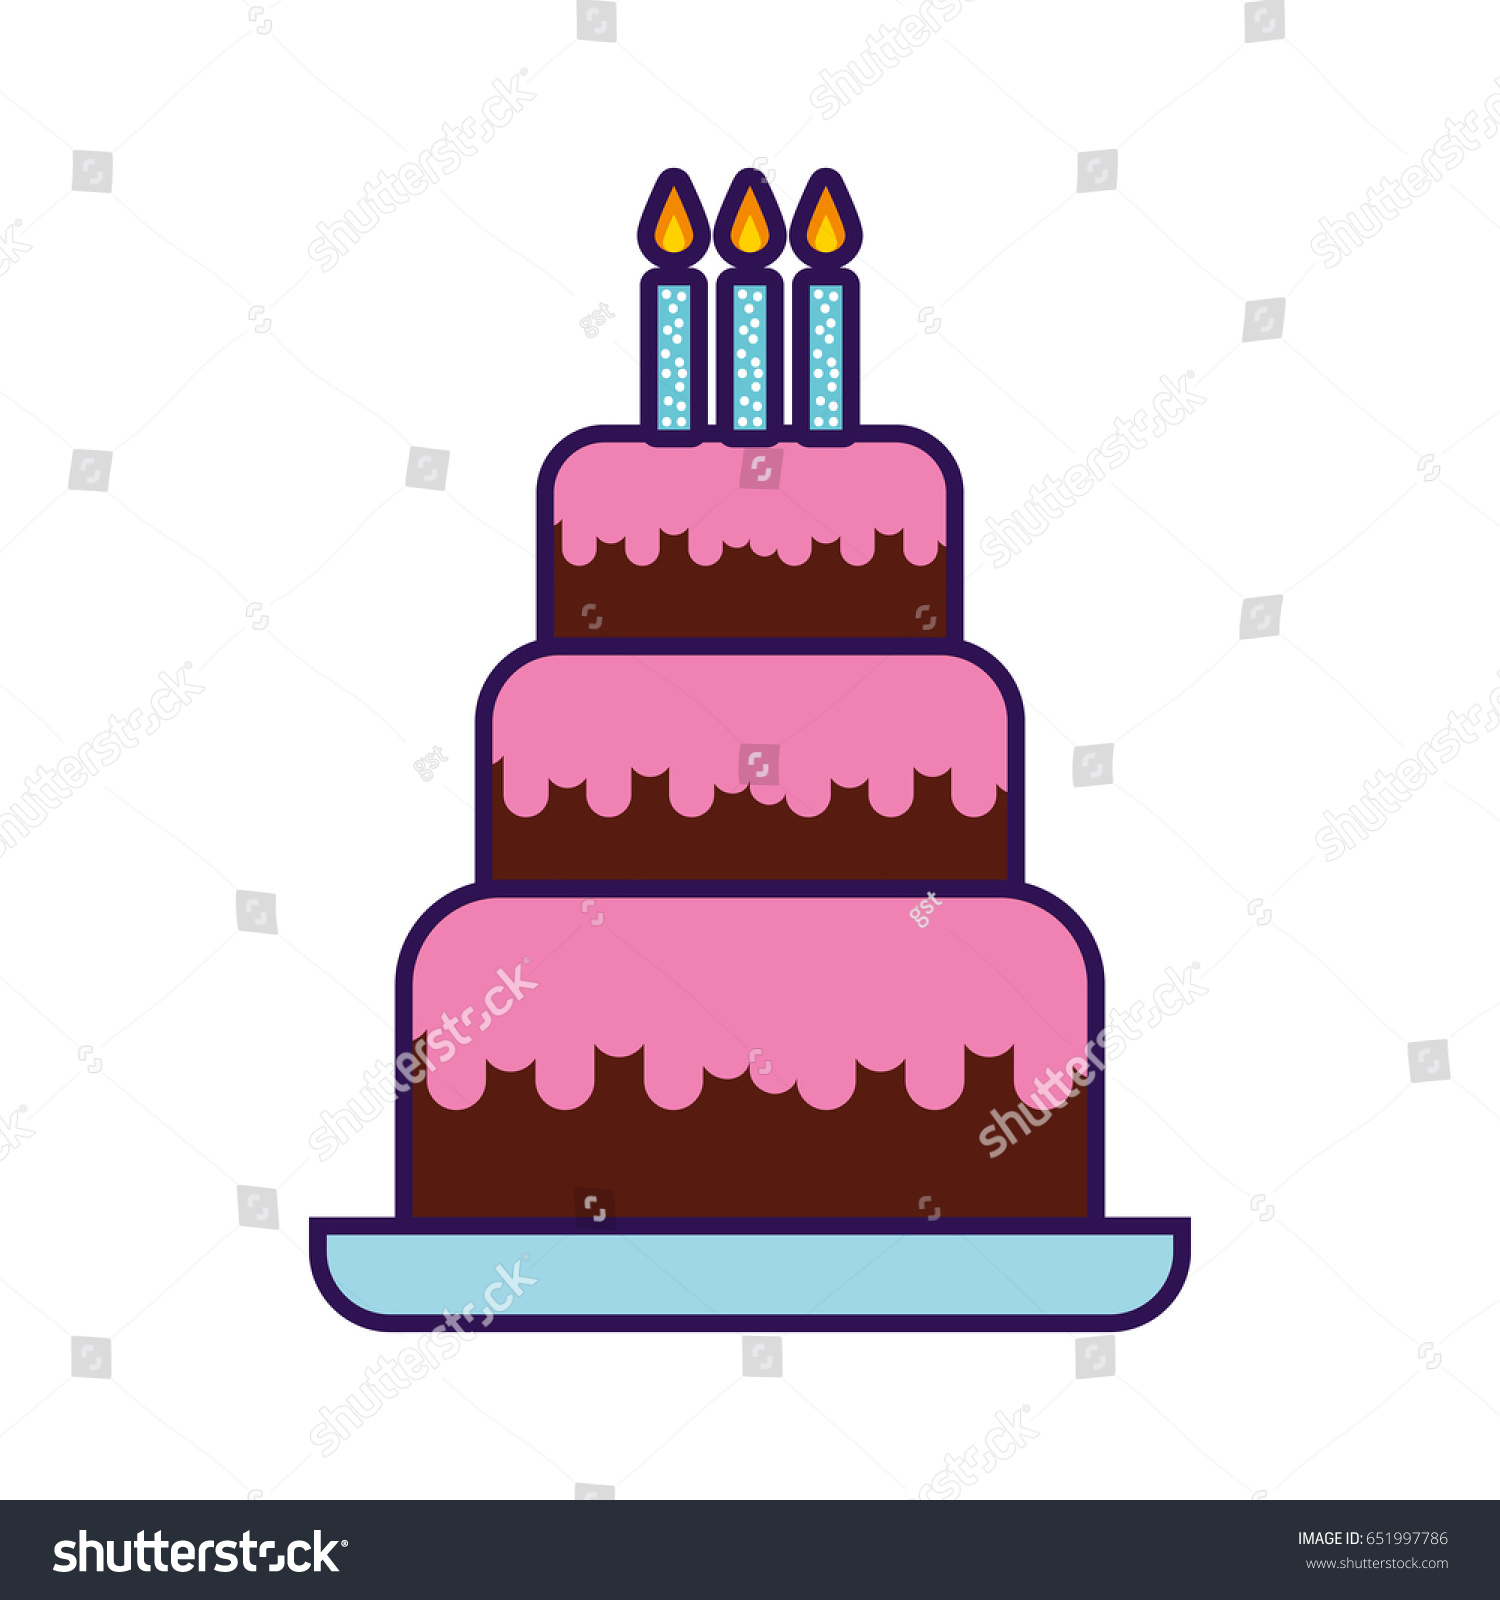 Stupendous Cute Birthday Cake Cartoon Stock Vector Royalty Free 651997786 Funny Birthday Cards Online Alyptdamsfinfo